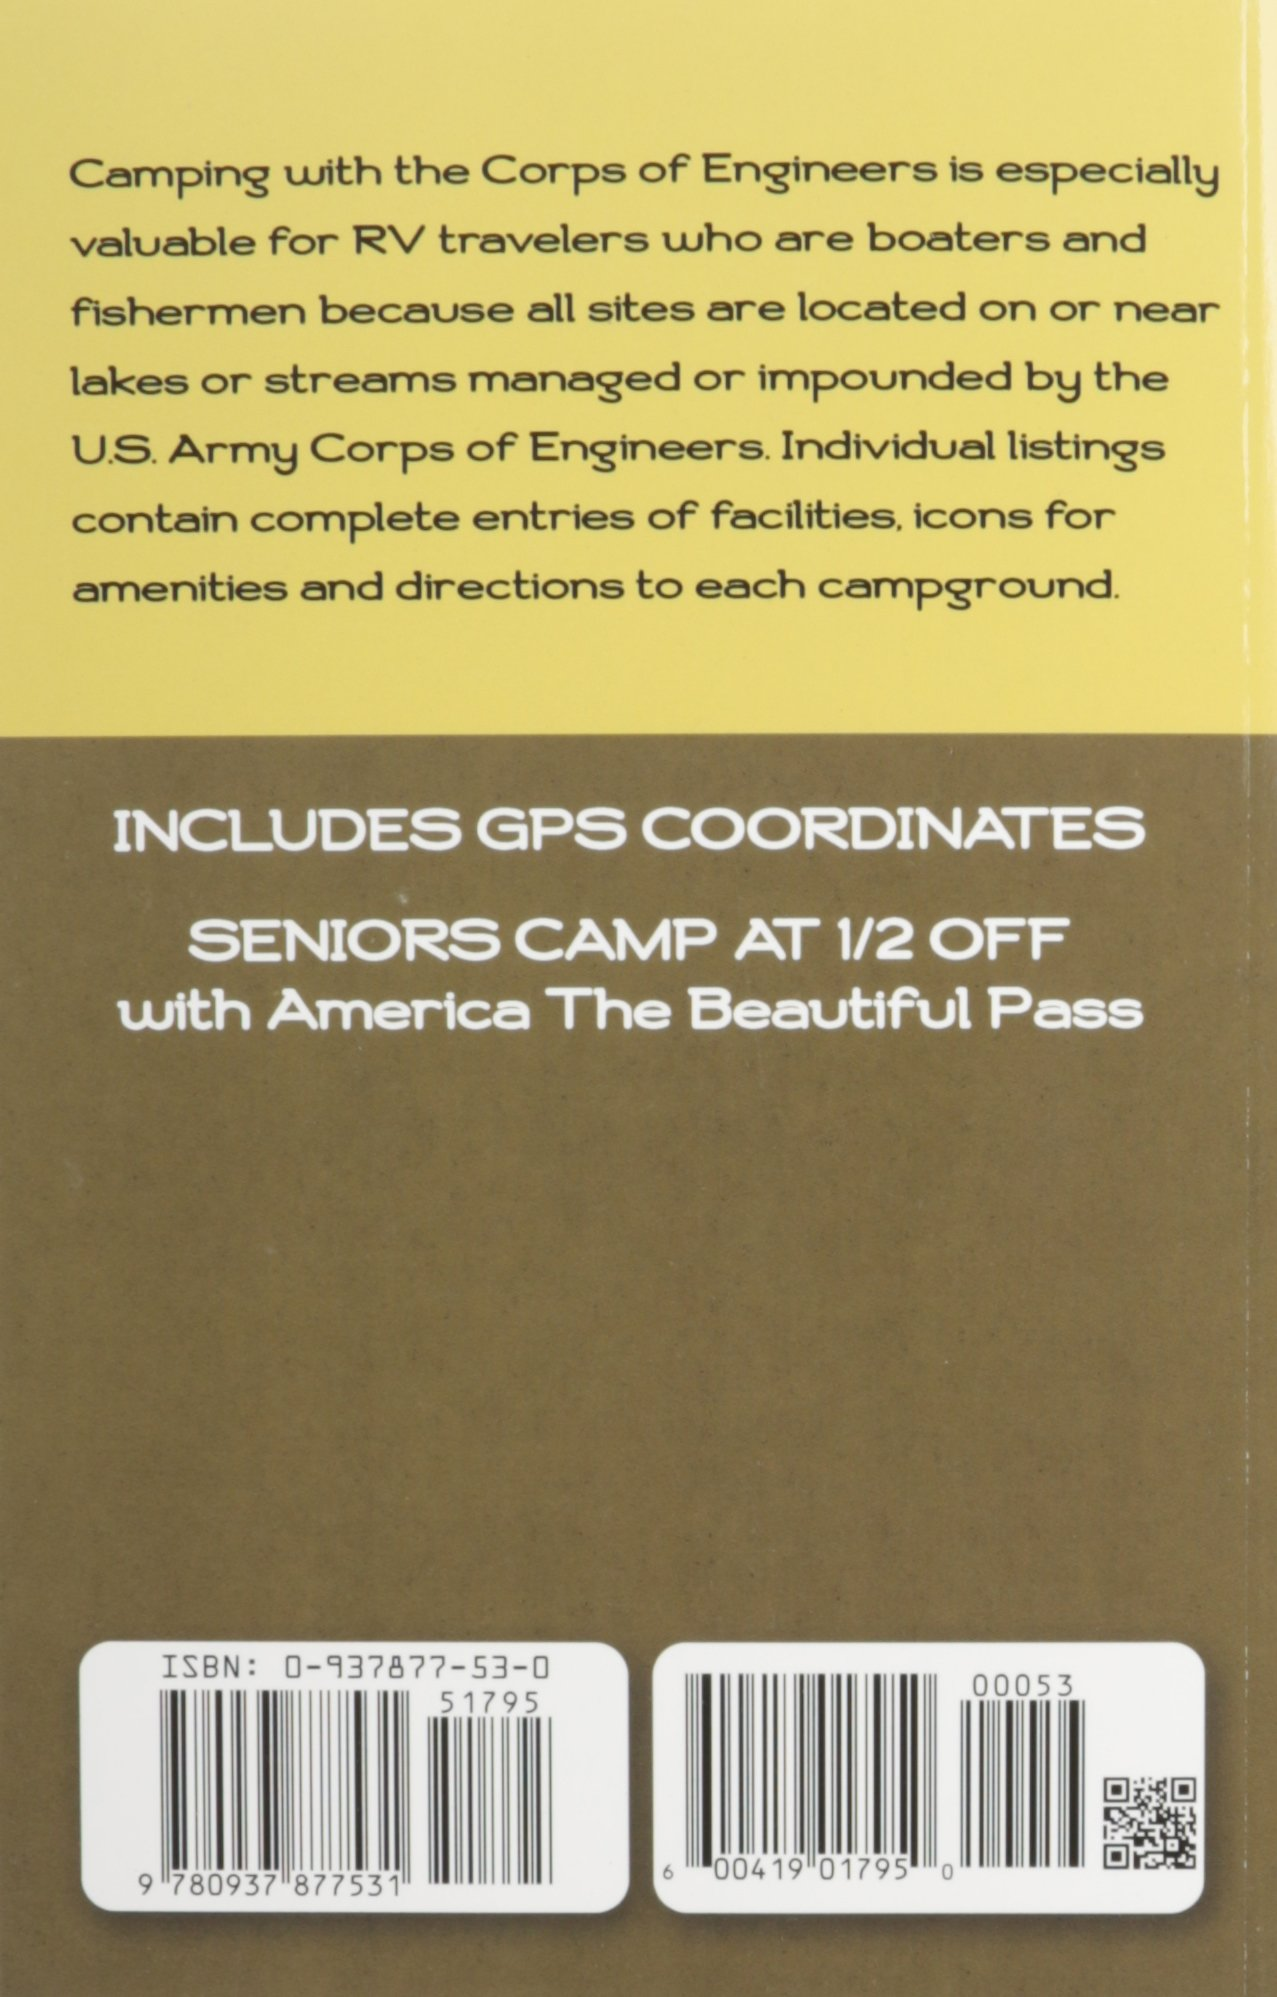 Camping With the Corps of Engineers: The Complete Guide to Campgrounds Built  and Operated by the U.S. Army Corps of Engineers: Don Wright:  9780937877531: ...